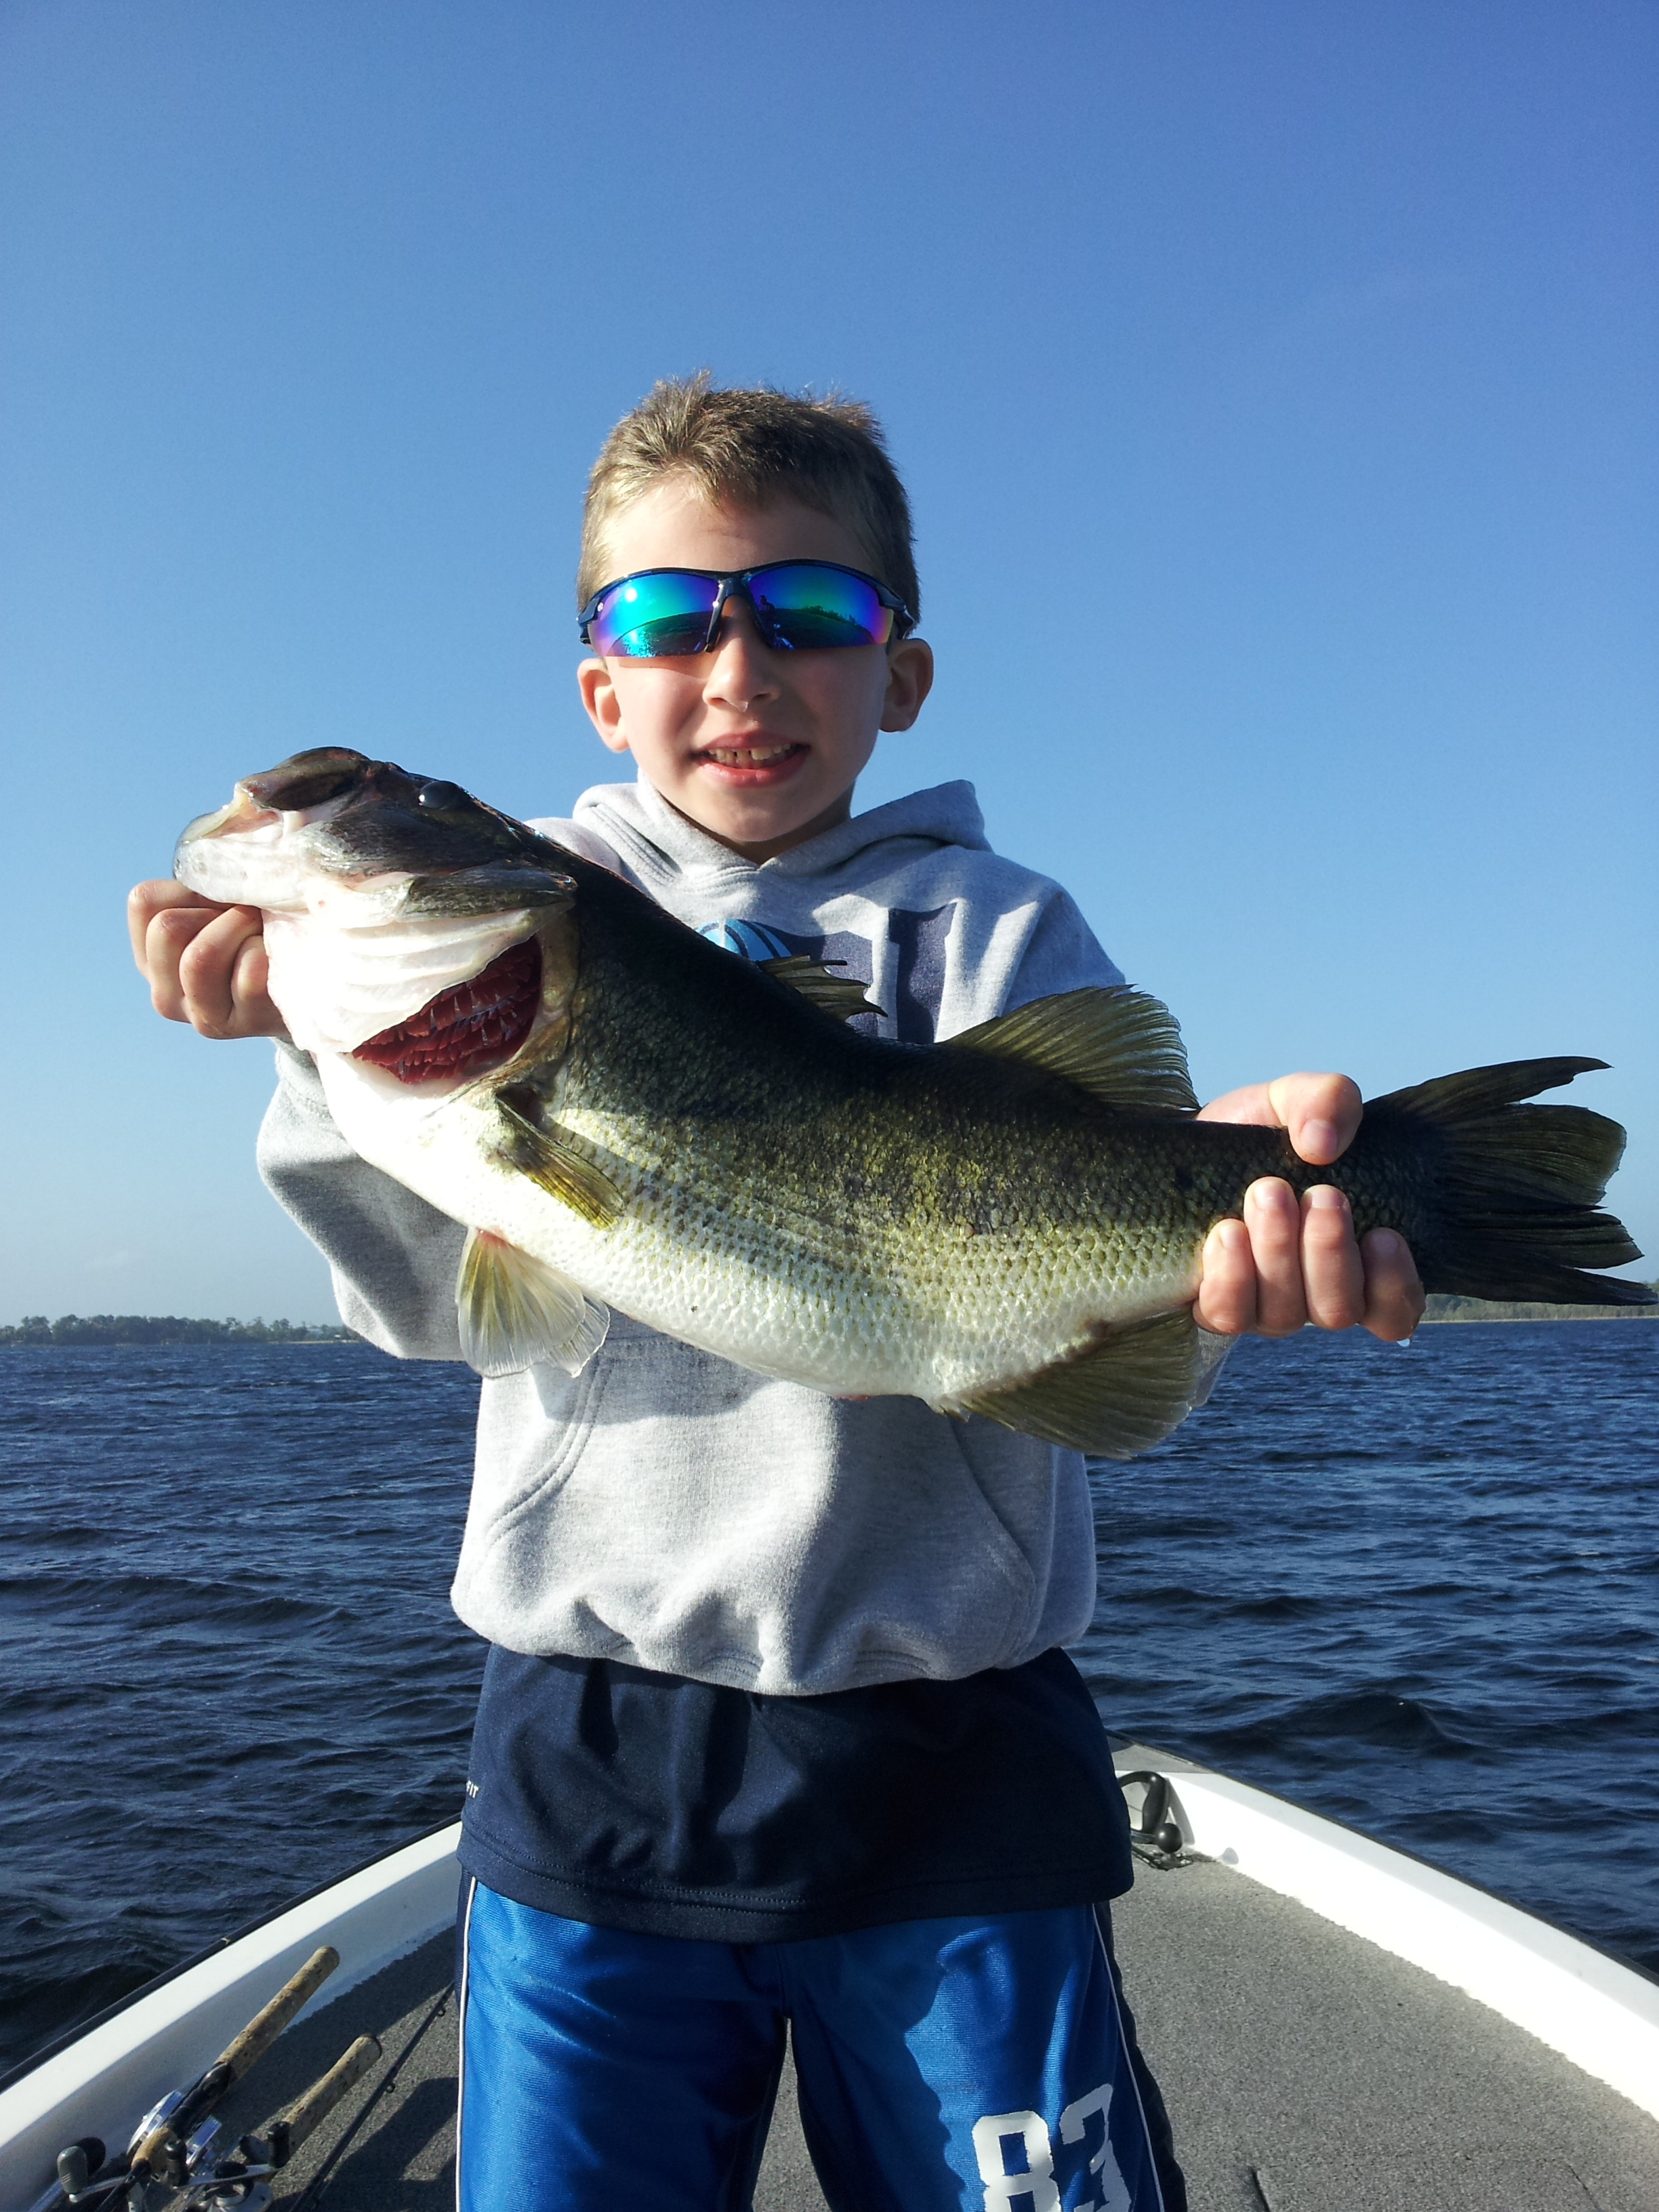 Father and son florida fishing trip bass fishing florida for Bass fishing disney world